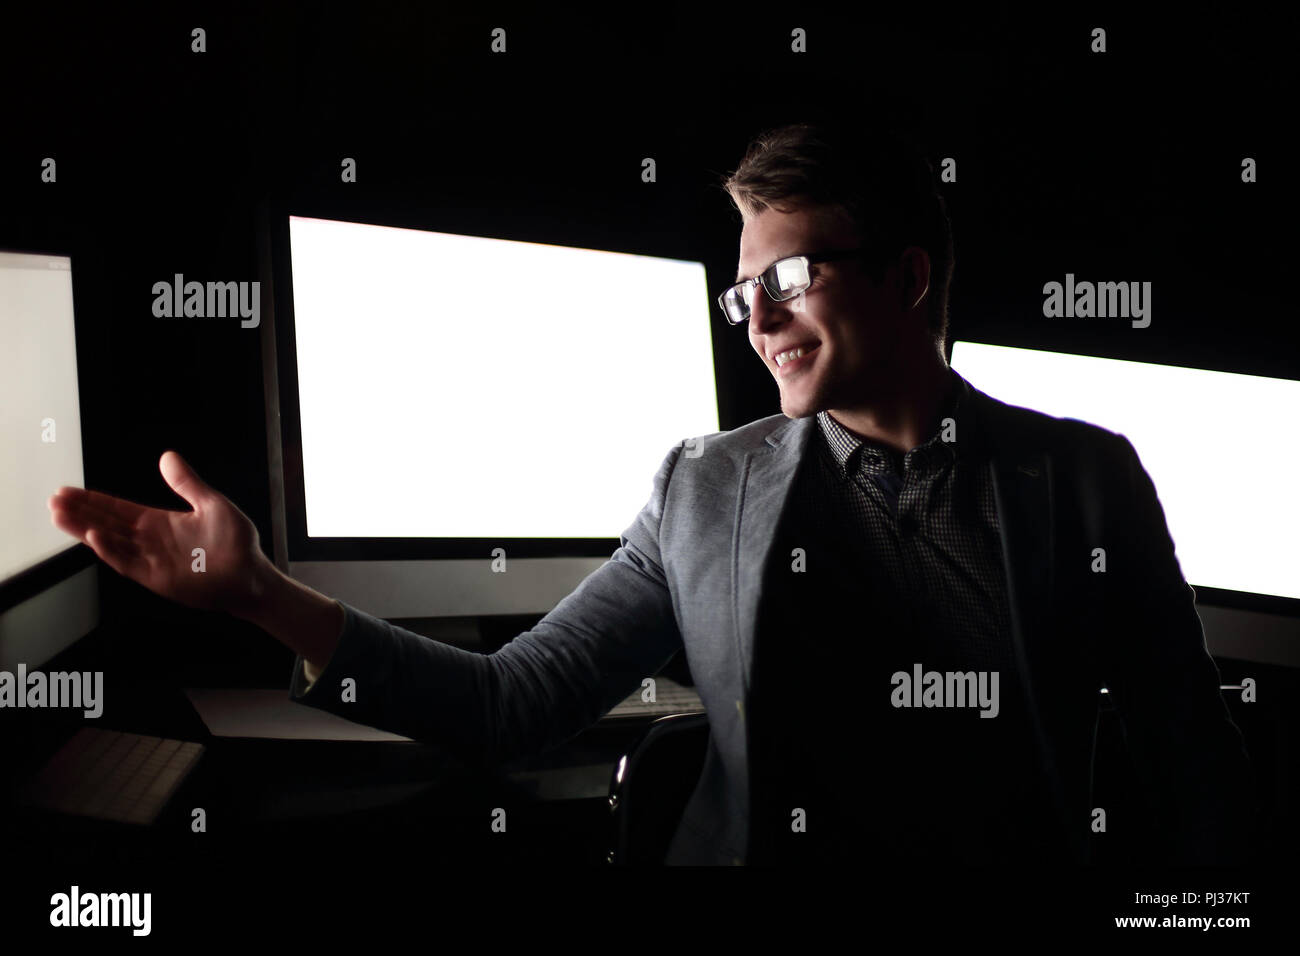 businessman discussing something in the computer room - Stock Image